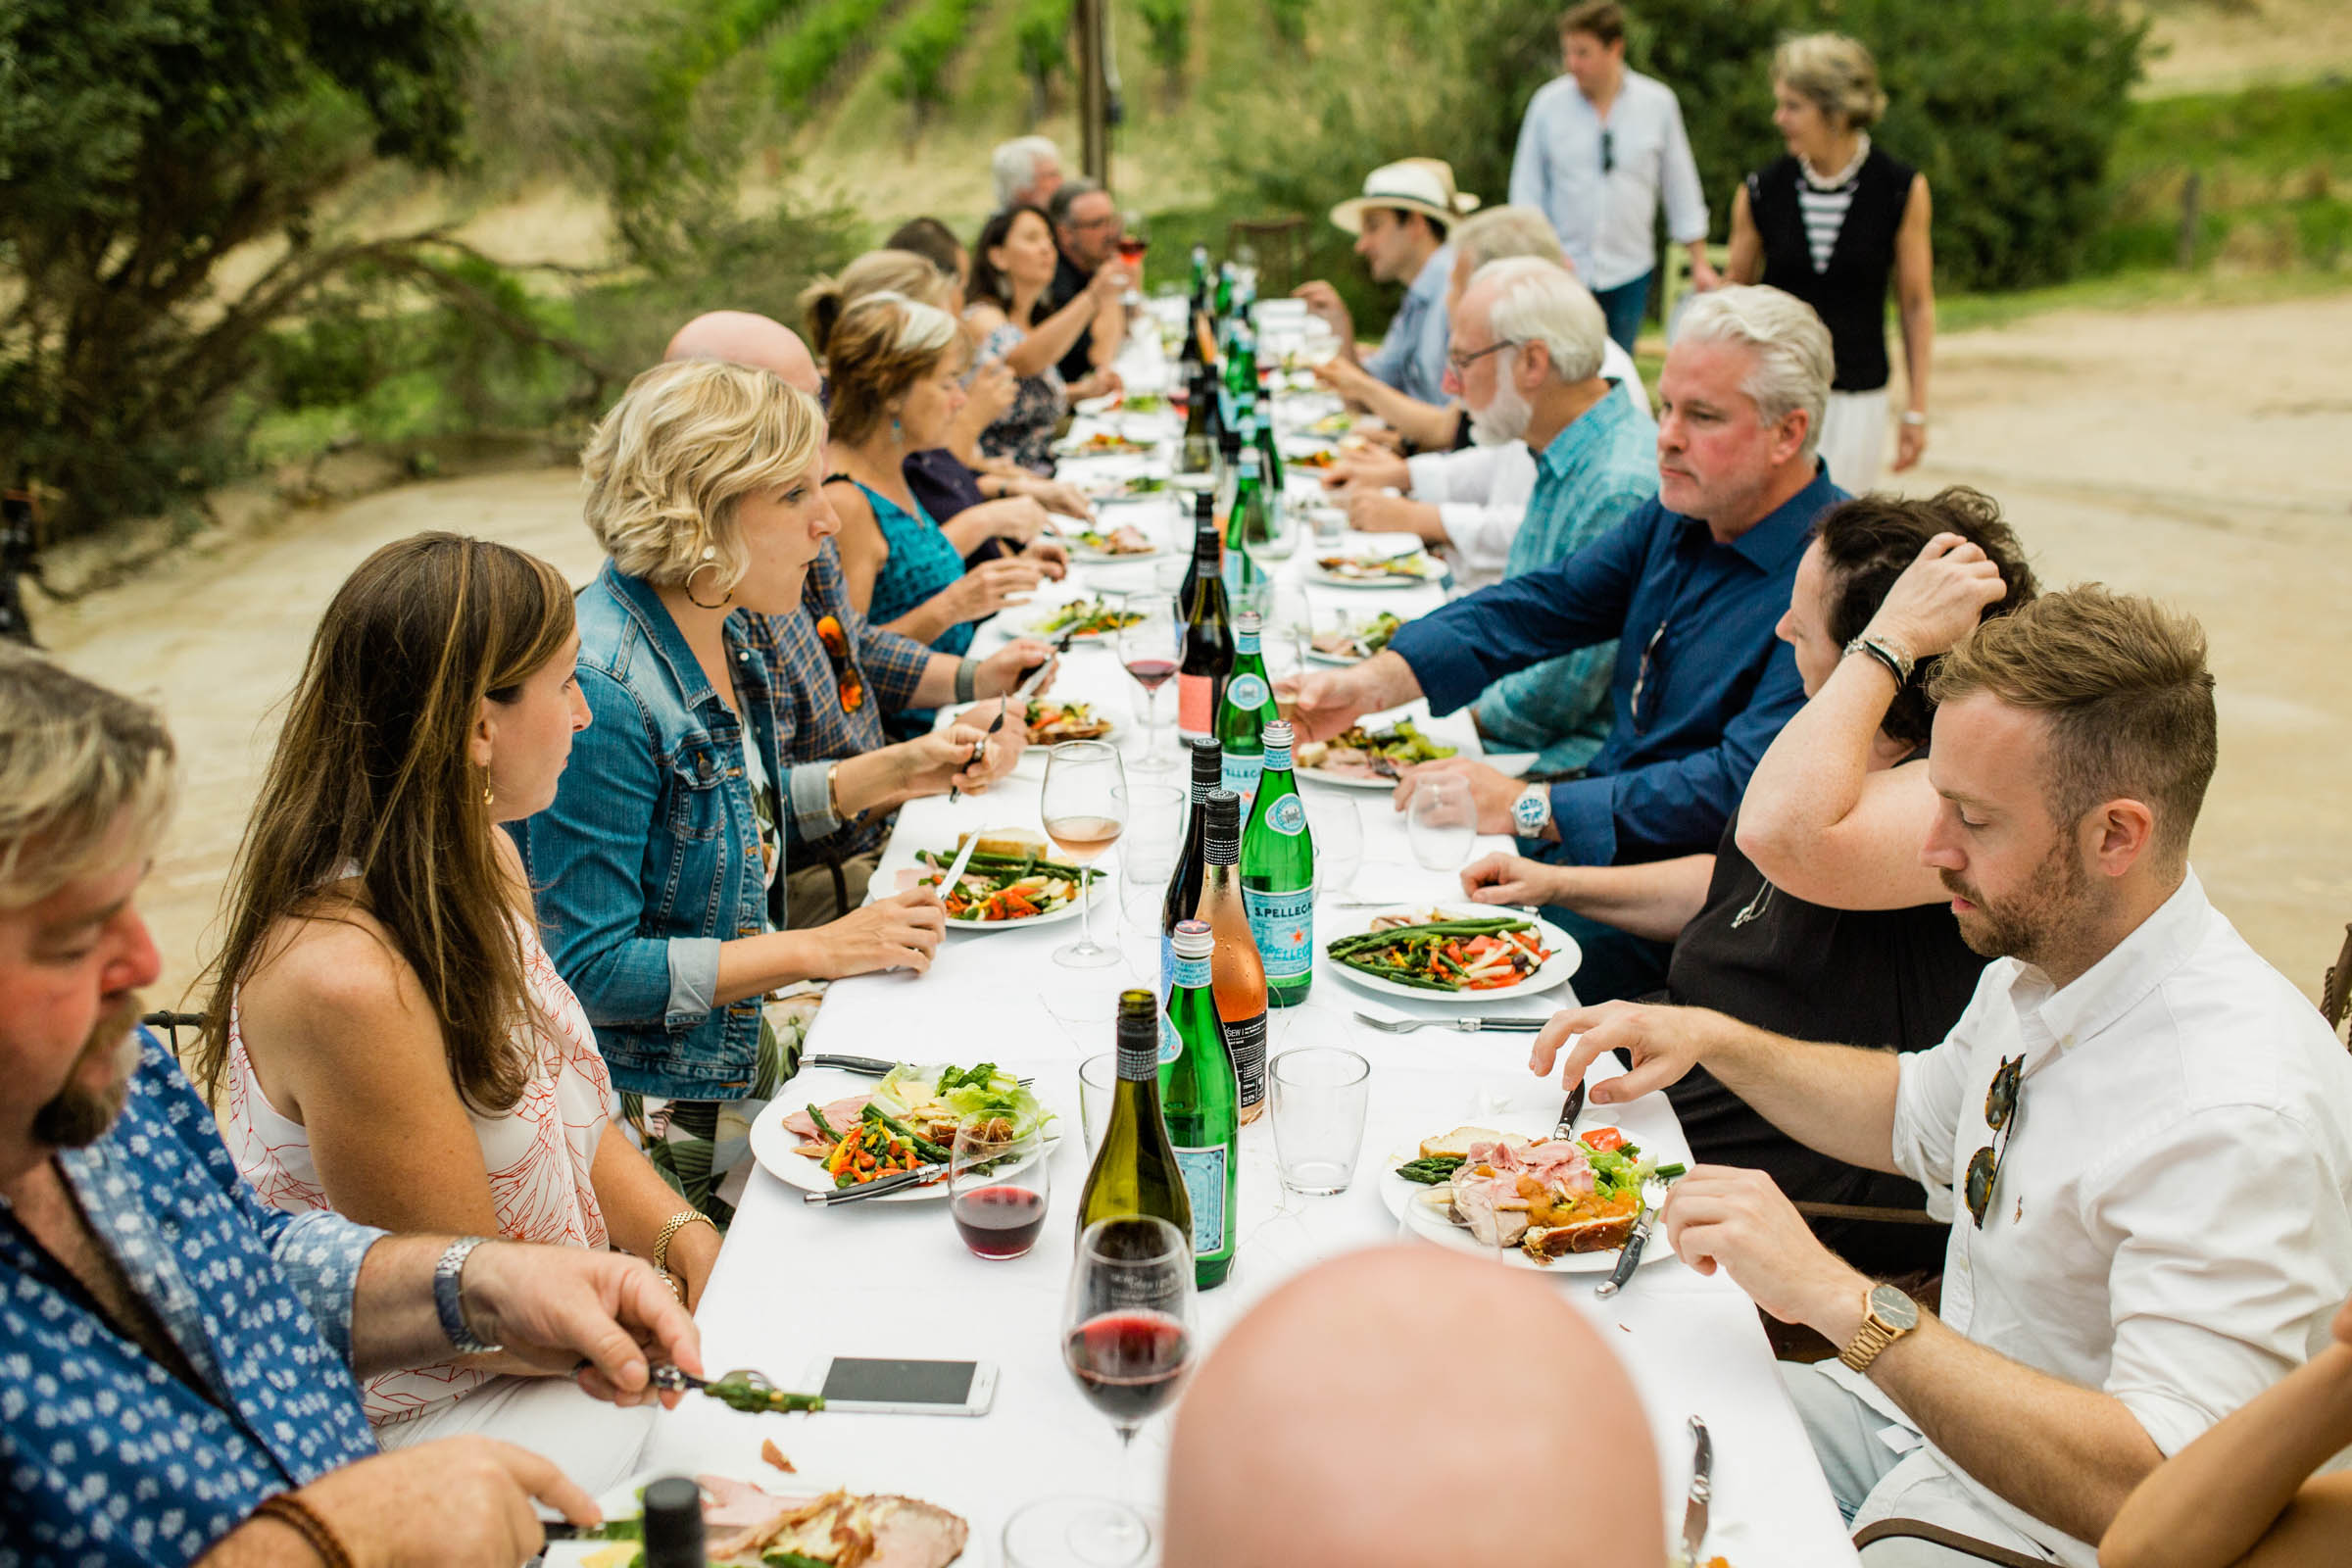 adelaide event photo photography photographer wine party gathering_156.jpg